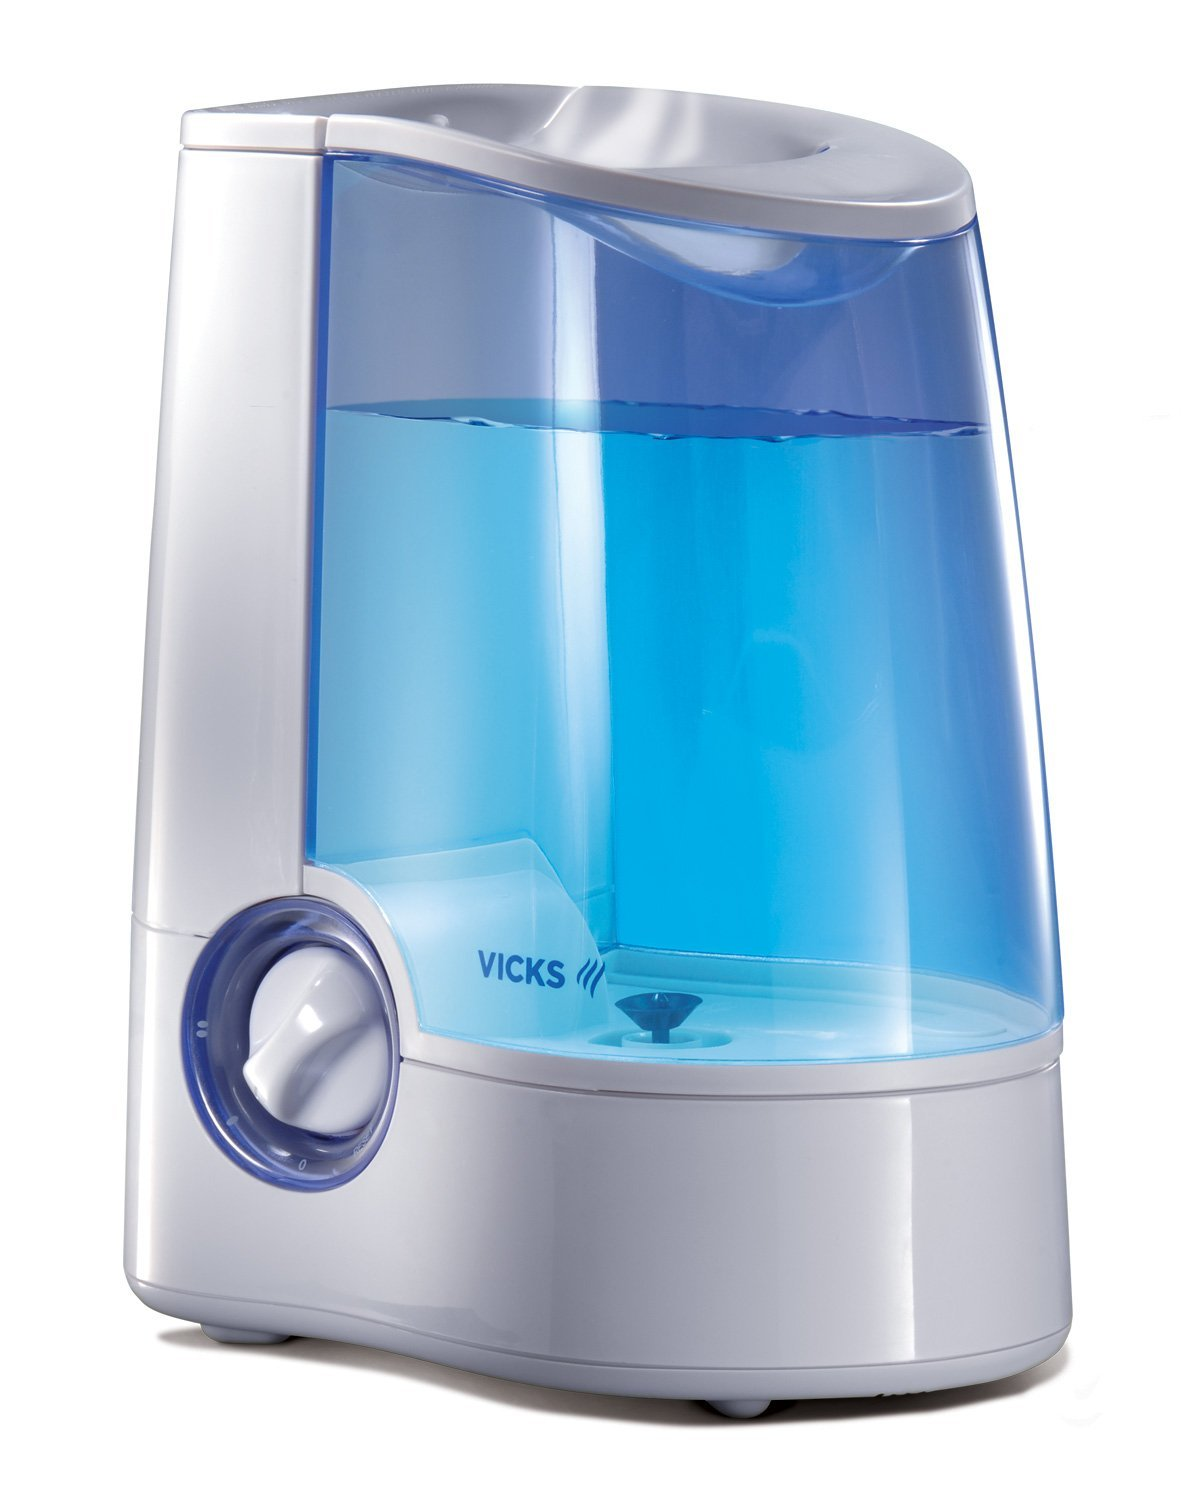 best steam humidifier 2014 2015 Vicks Warm Mist Humidifier with  #158BB6